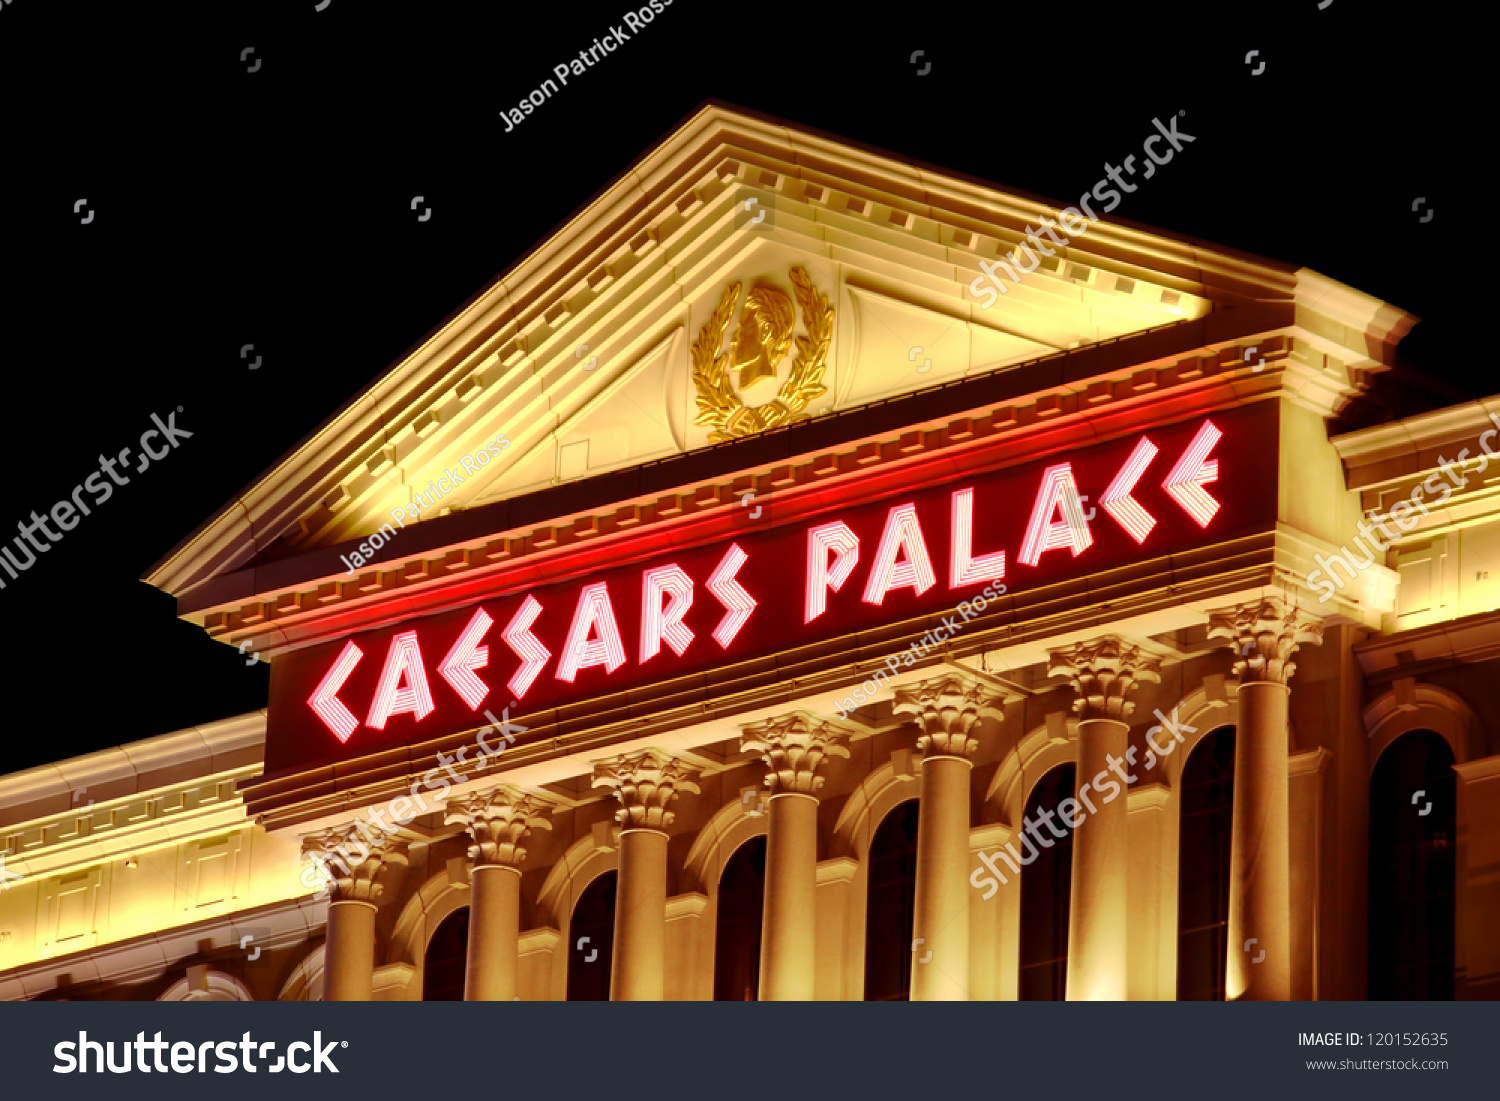 Ceaser casino in top sports gambling stories